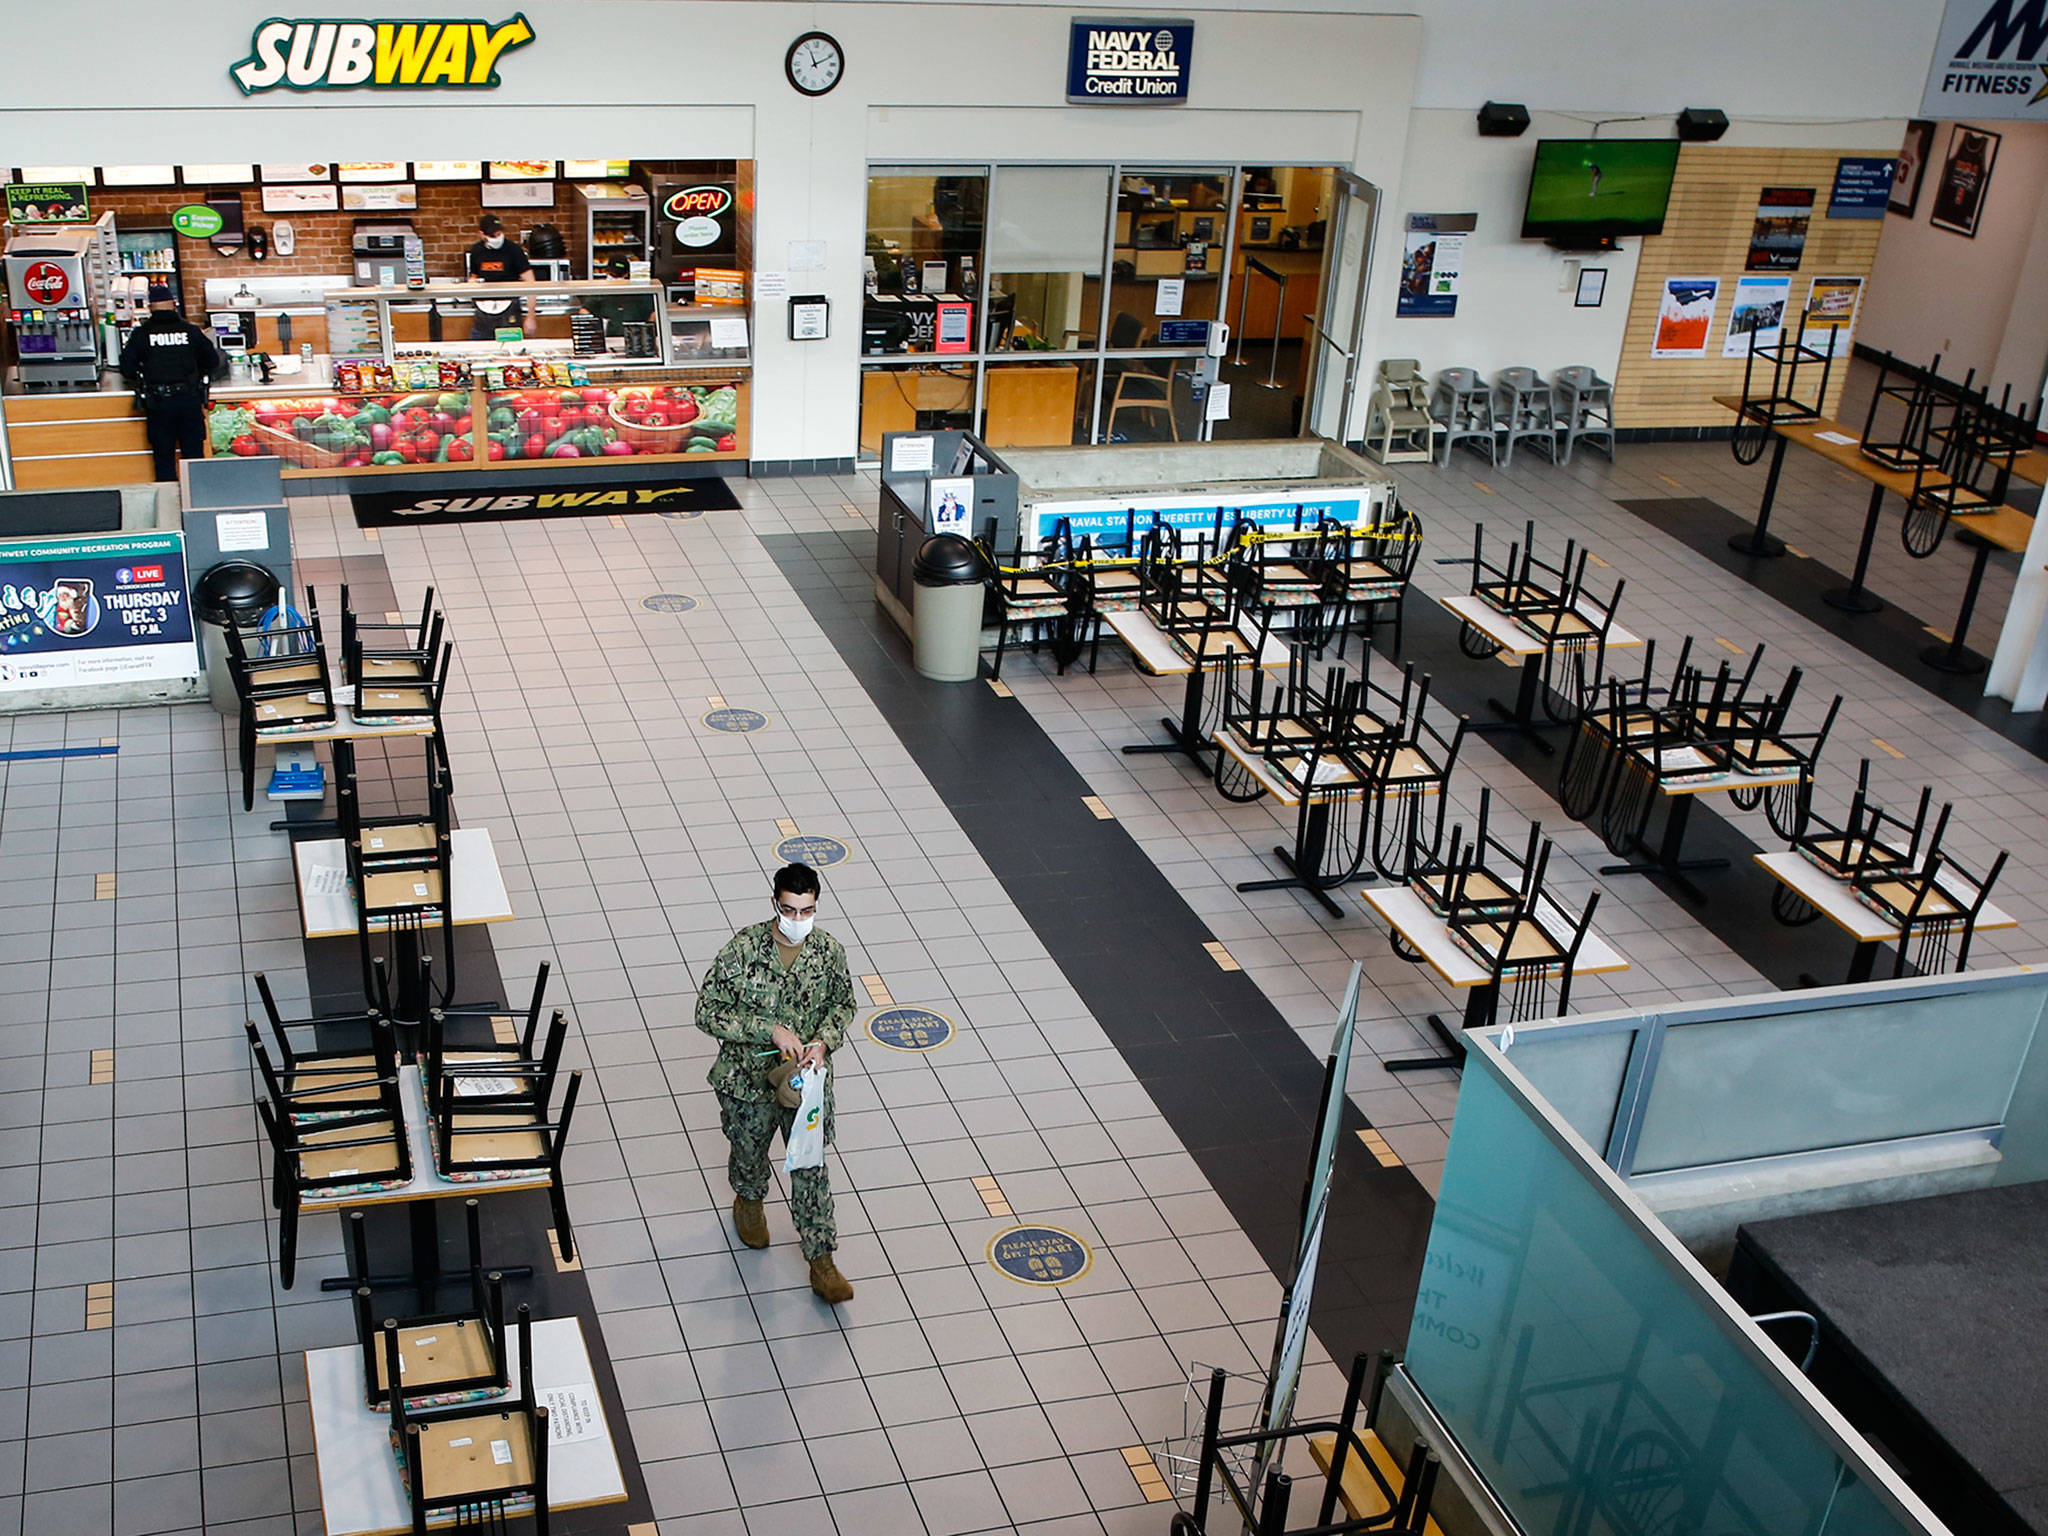 Tables and chairs are unavailable at The Commons at Naval Station Everett due to coronavirus restrictions. (Kevin Clark / The Herald)